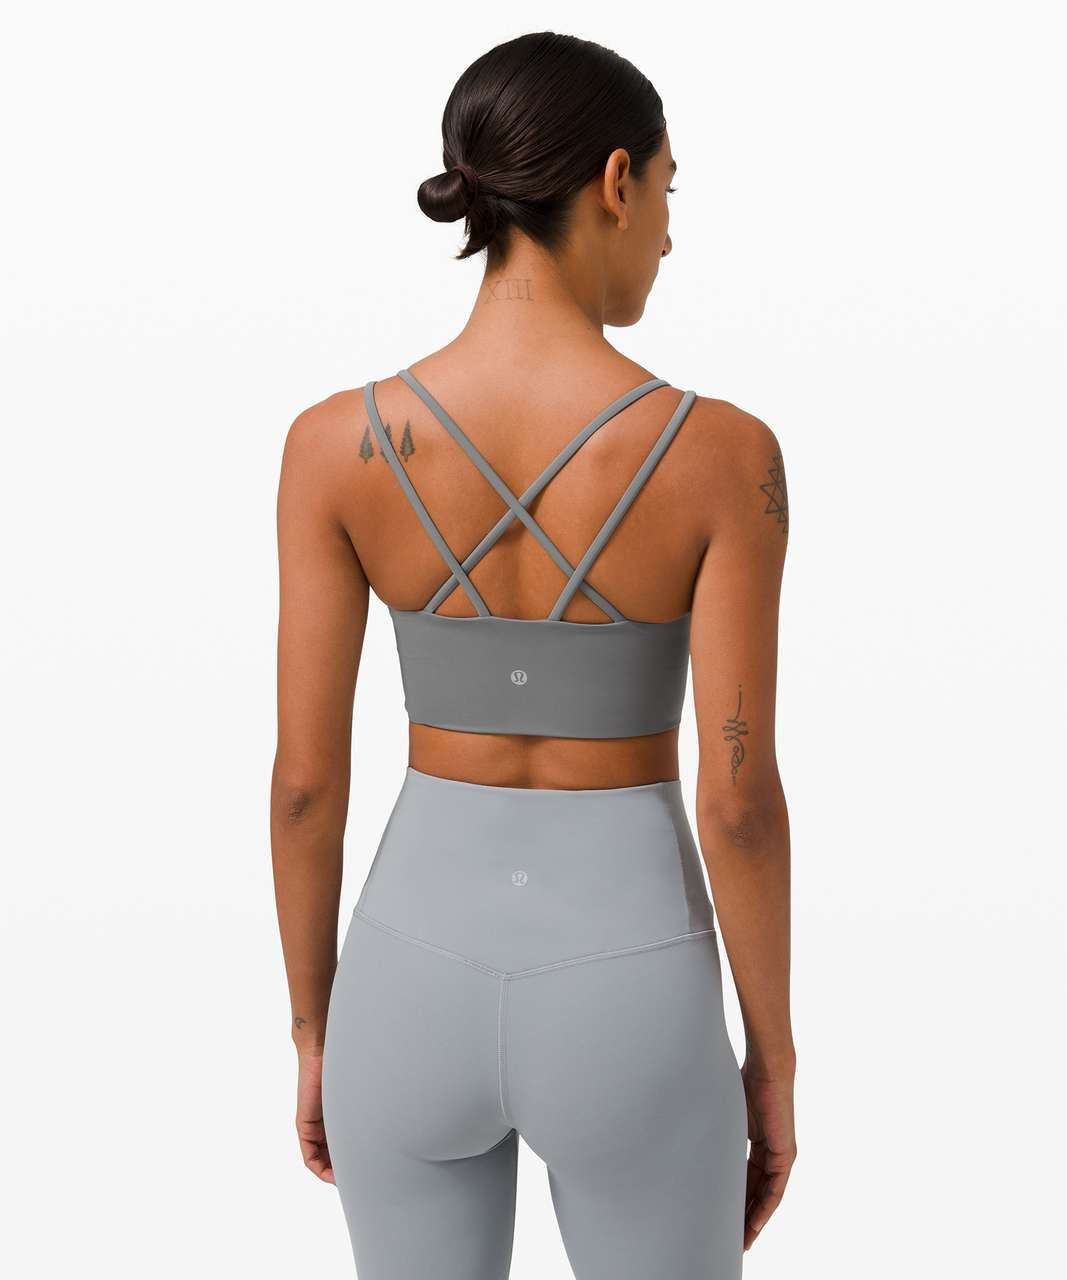 Lululemon Like a Cloud Bra Long Line *Light Support, B/C Cup - Asphalt Grey